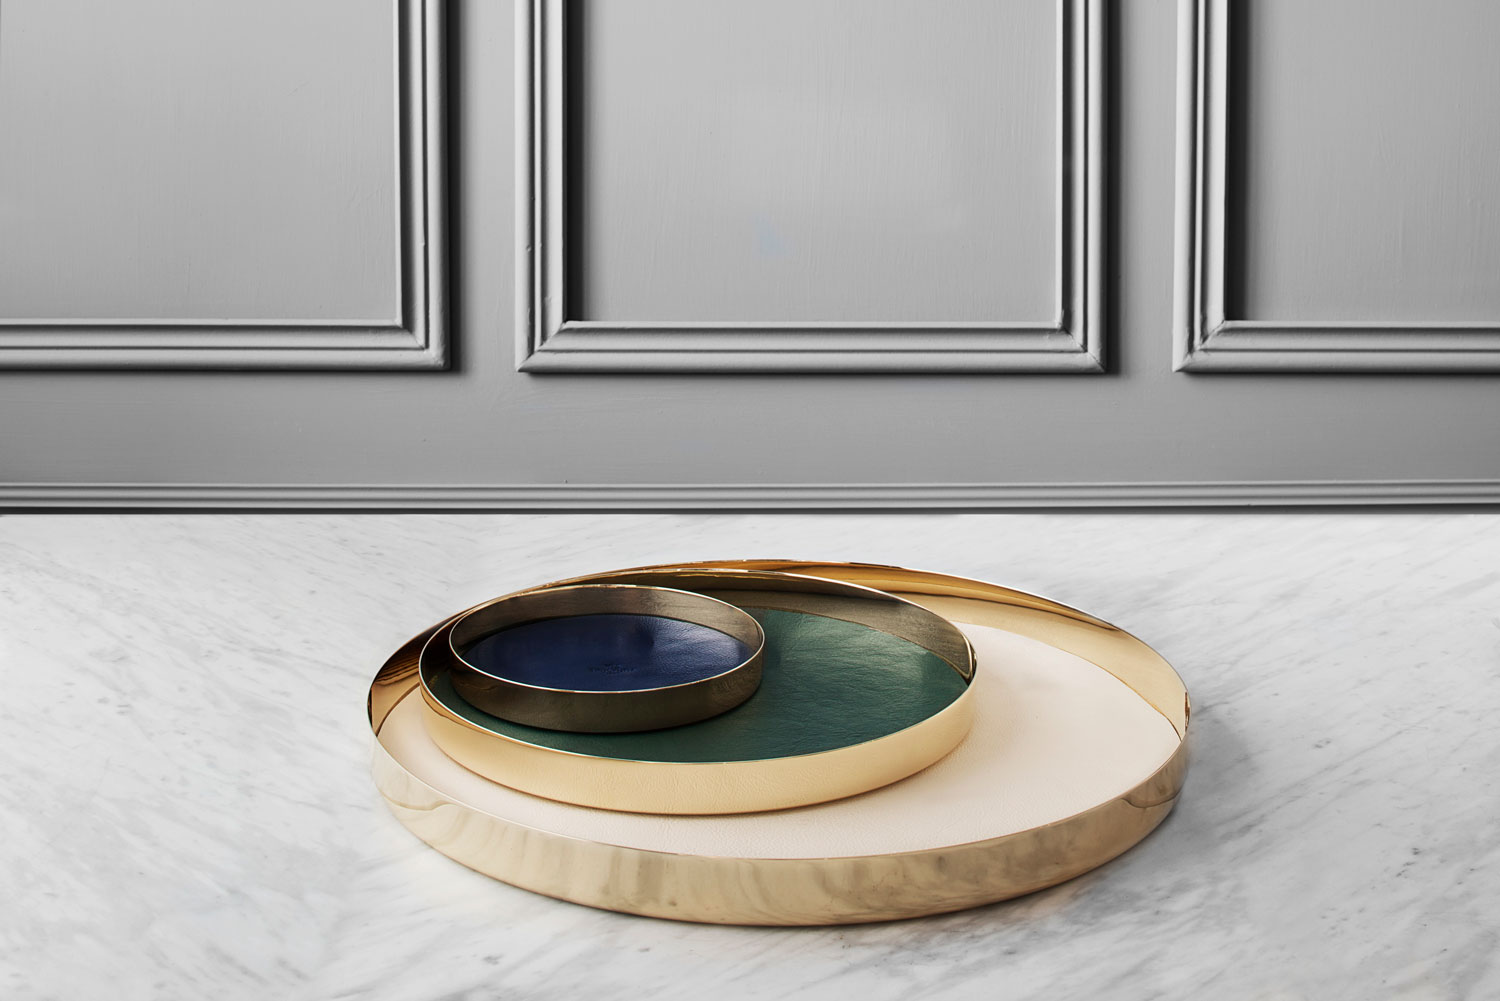 Leather Lined Brass Trays by GamFratesi for Skultuna at Maison & Objet 2015 | Yellowtrace